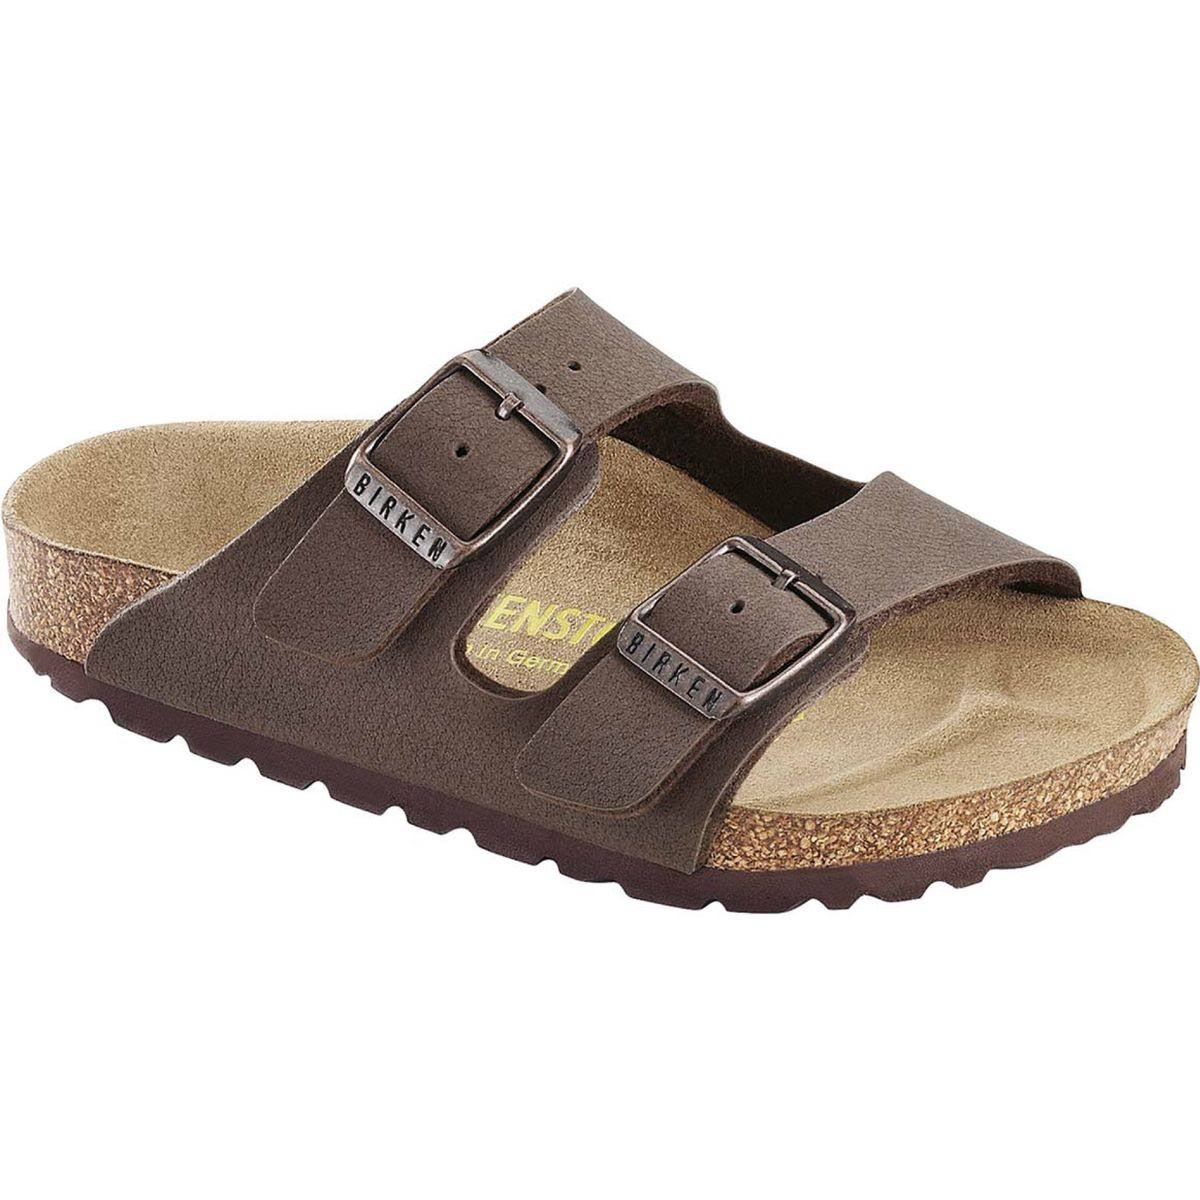 Birkenstock Arizona Sandals Brown 34 EU